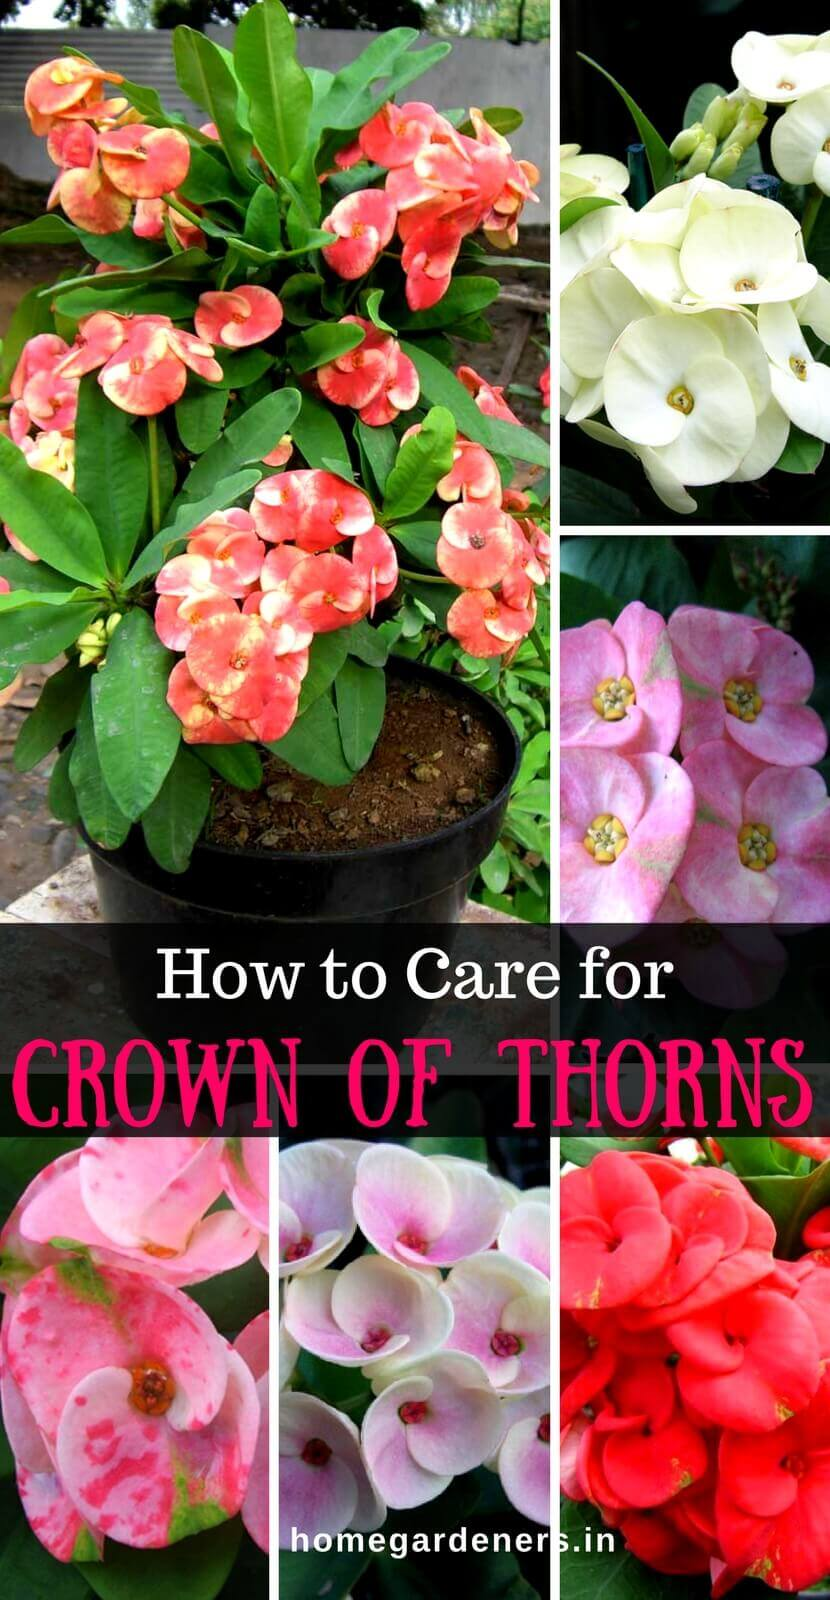 Euphorbia Milii Plant- How To Grow and Care For Crown of Thorns Plant